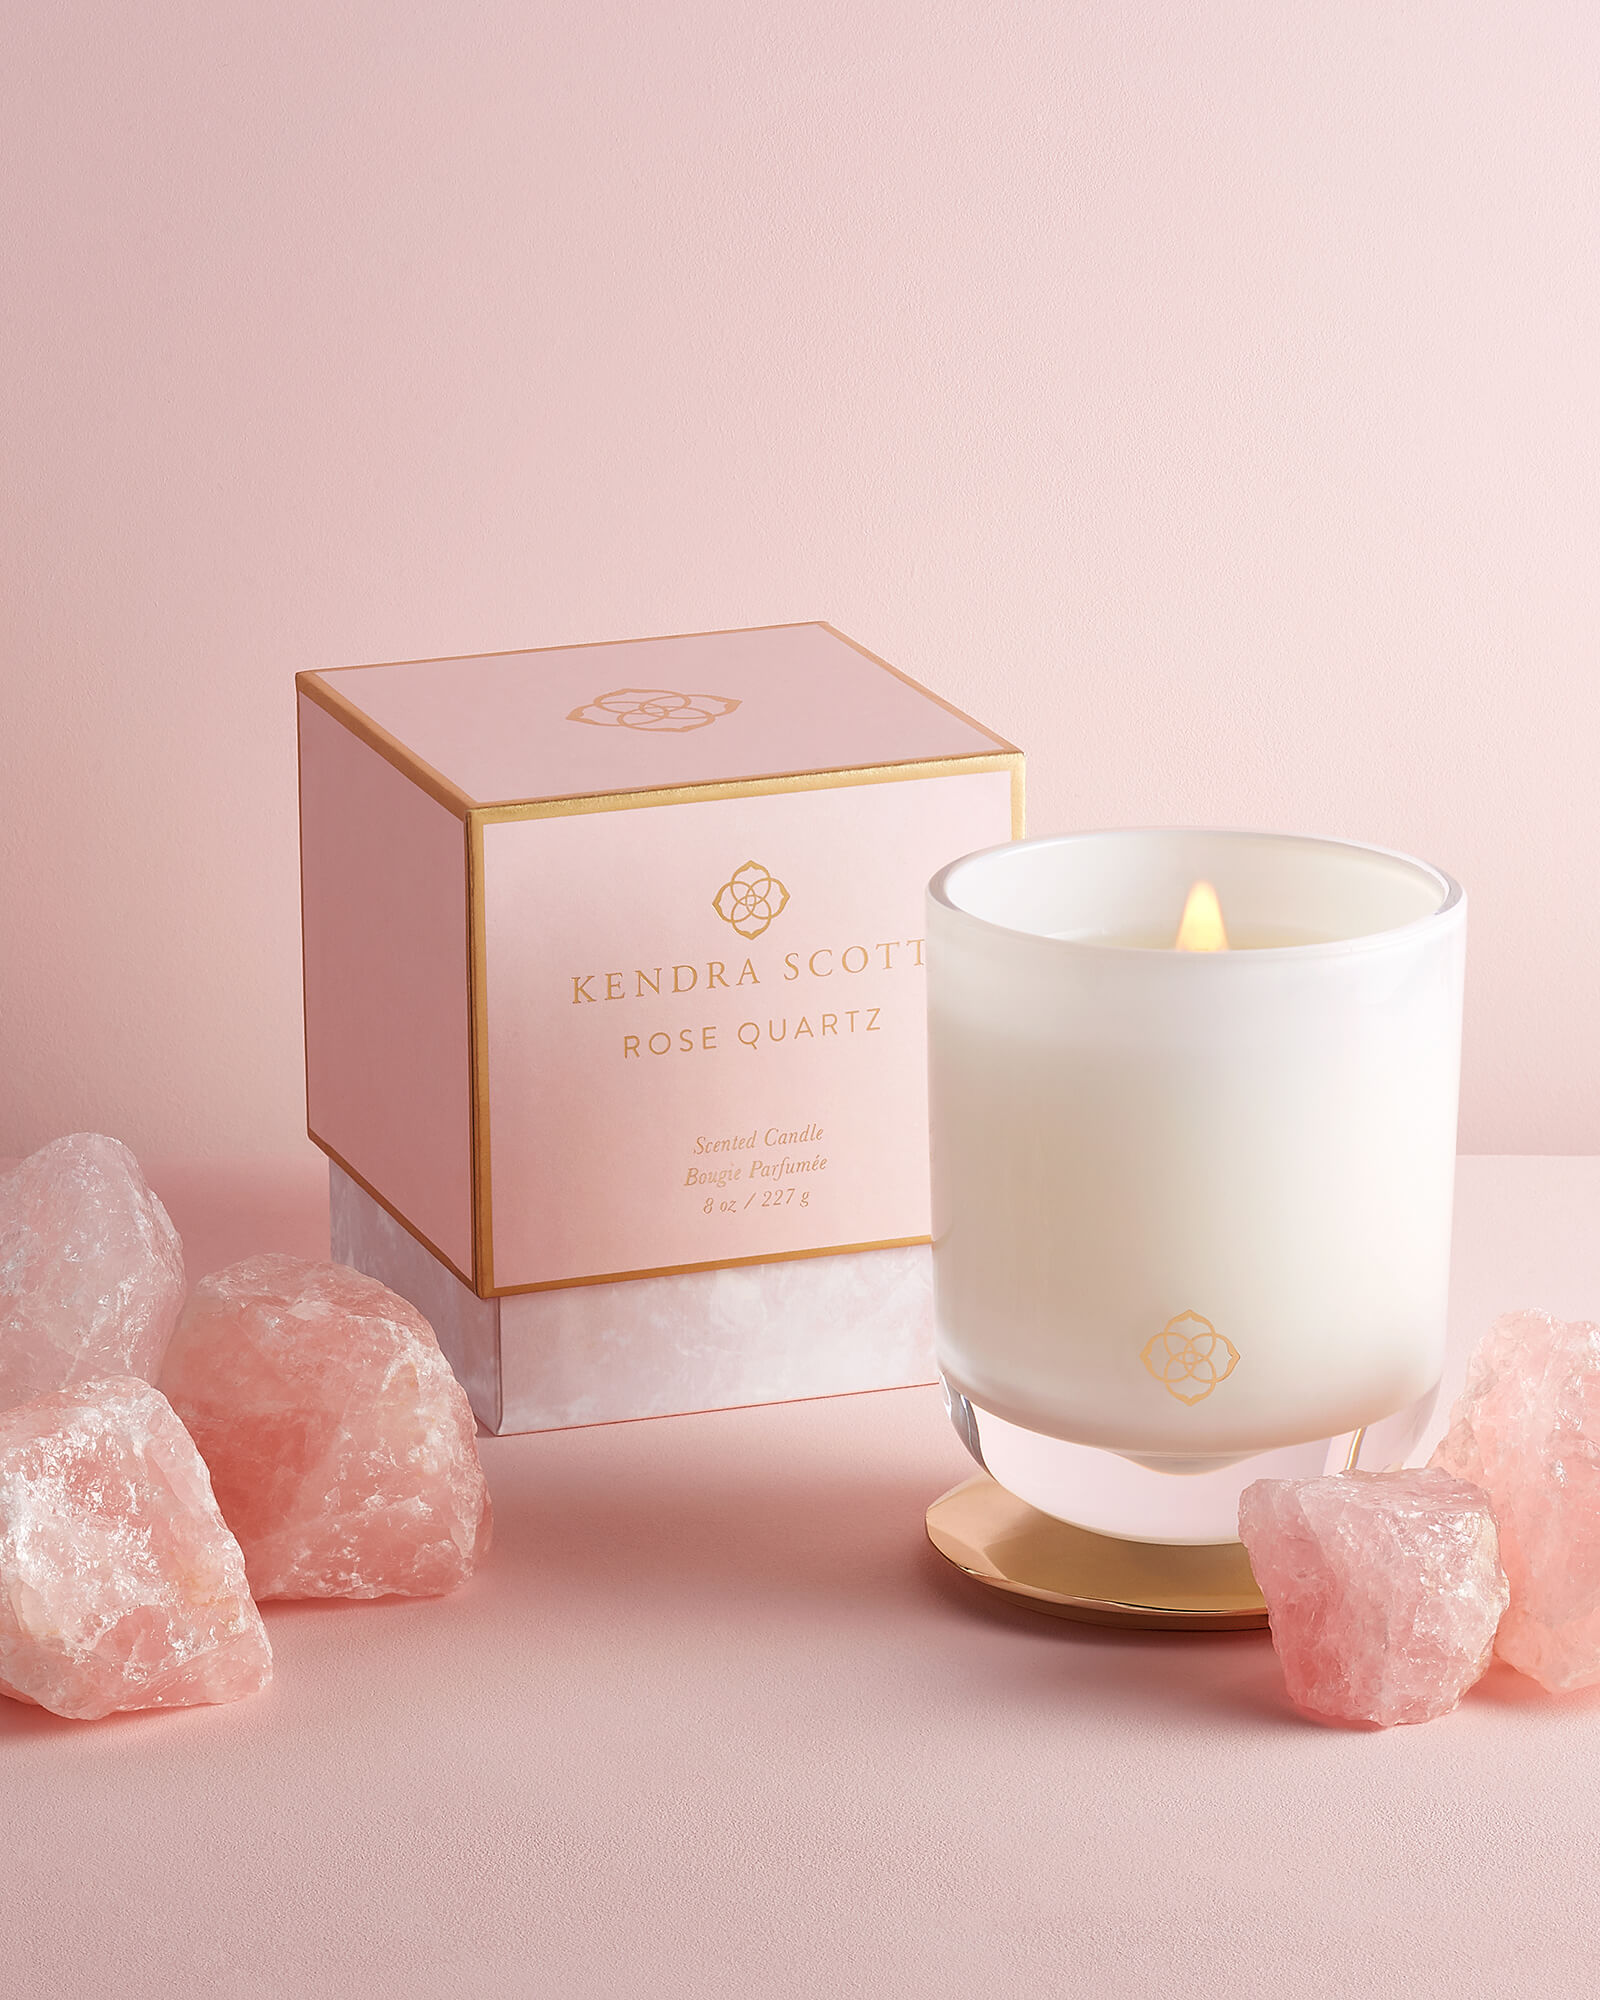 kendra-scott-rose-quartz-scented-soy-wax-blend-candle_02_default_lg.jpg